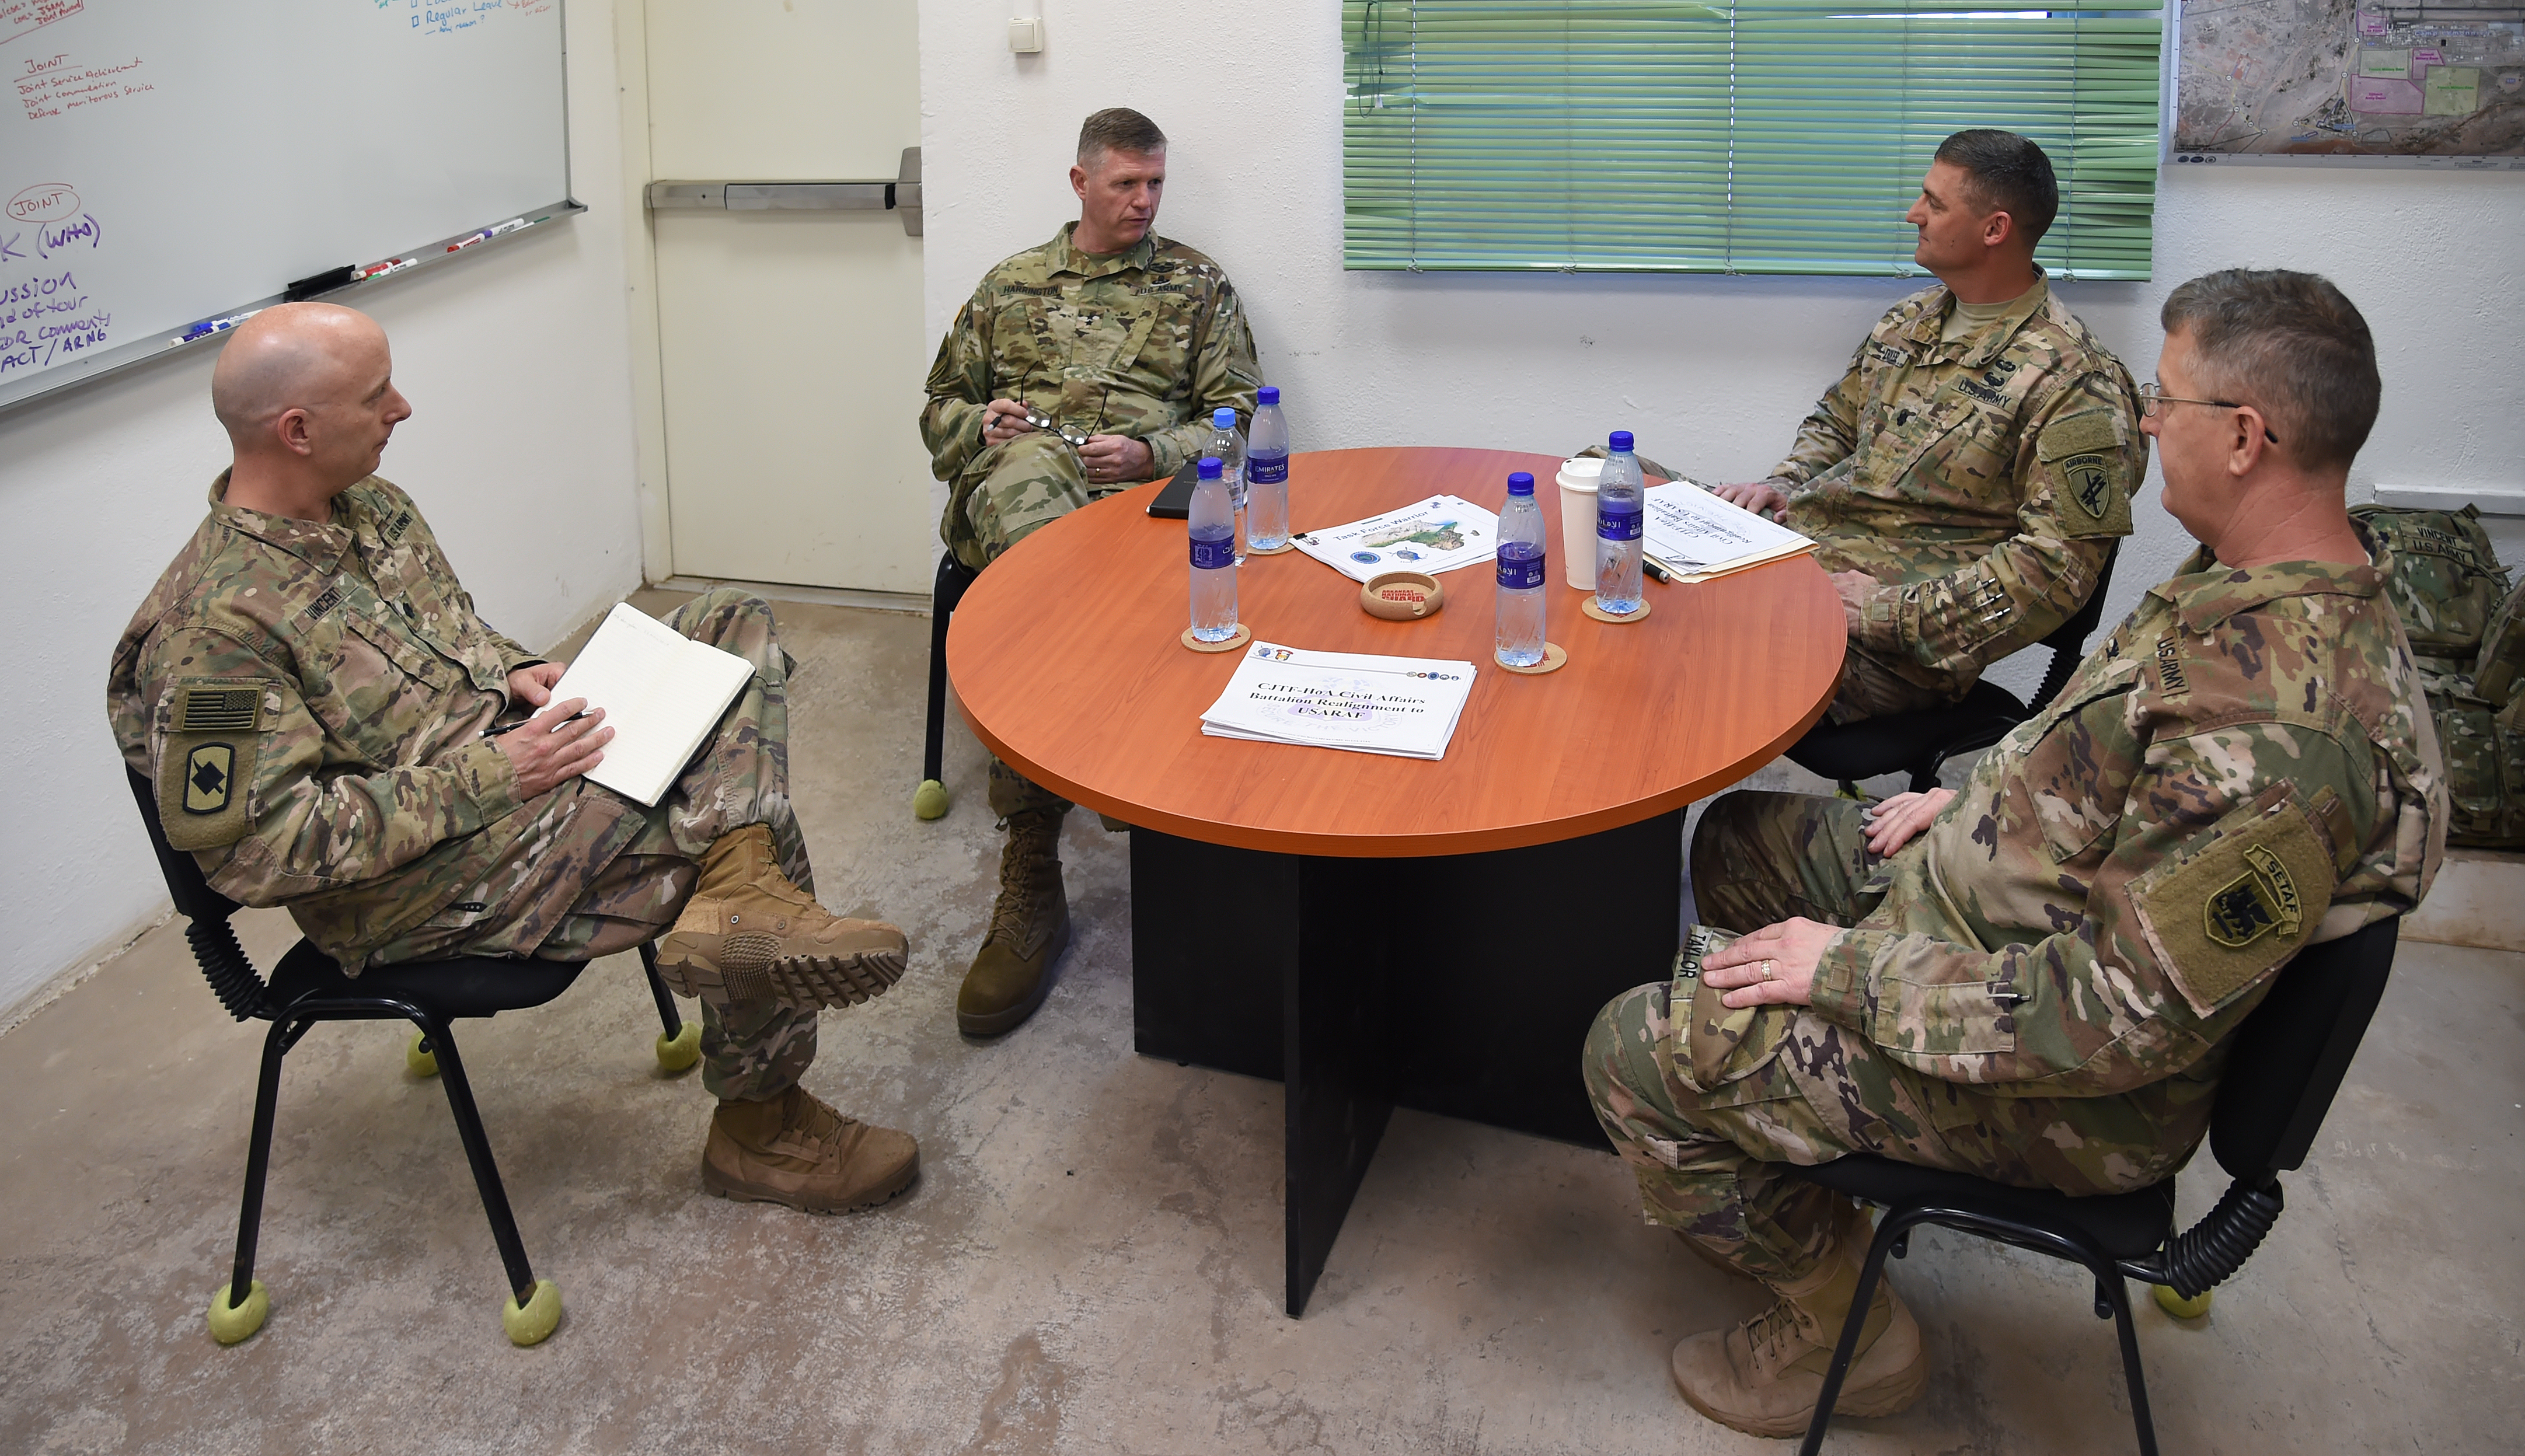 U.S. Army Maj. Gen. Joseph Harrington, commanding general of U.S. Army Africa engages leaders with the 1st Battalion, 153rd Infantry Regiment and 418th Civil Affairs Battalion at Camp Lemonnier, Djibouti, March 22, 2017. Harrington's visit included the opportunity to meet with Camp Lemonnier and Combined Joint Task Force-Horn of Africa leadership, as well as recognize numerous deployed Soldiers identified as superior performers while serving in the Horn of Africa. (U.S. Air National Guard photo by Master Sgt. Paul Gorman)